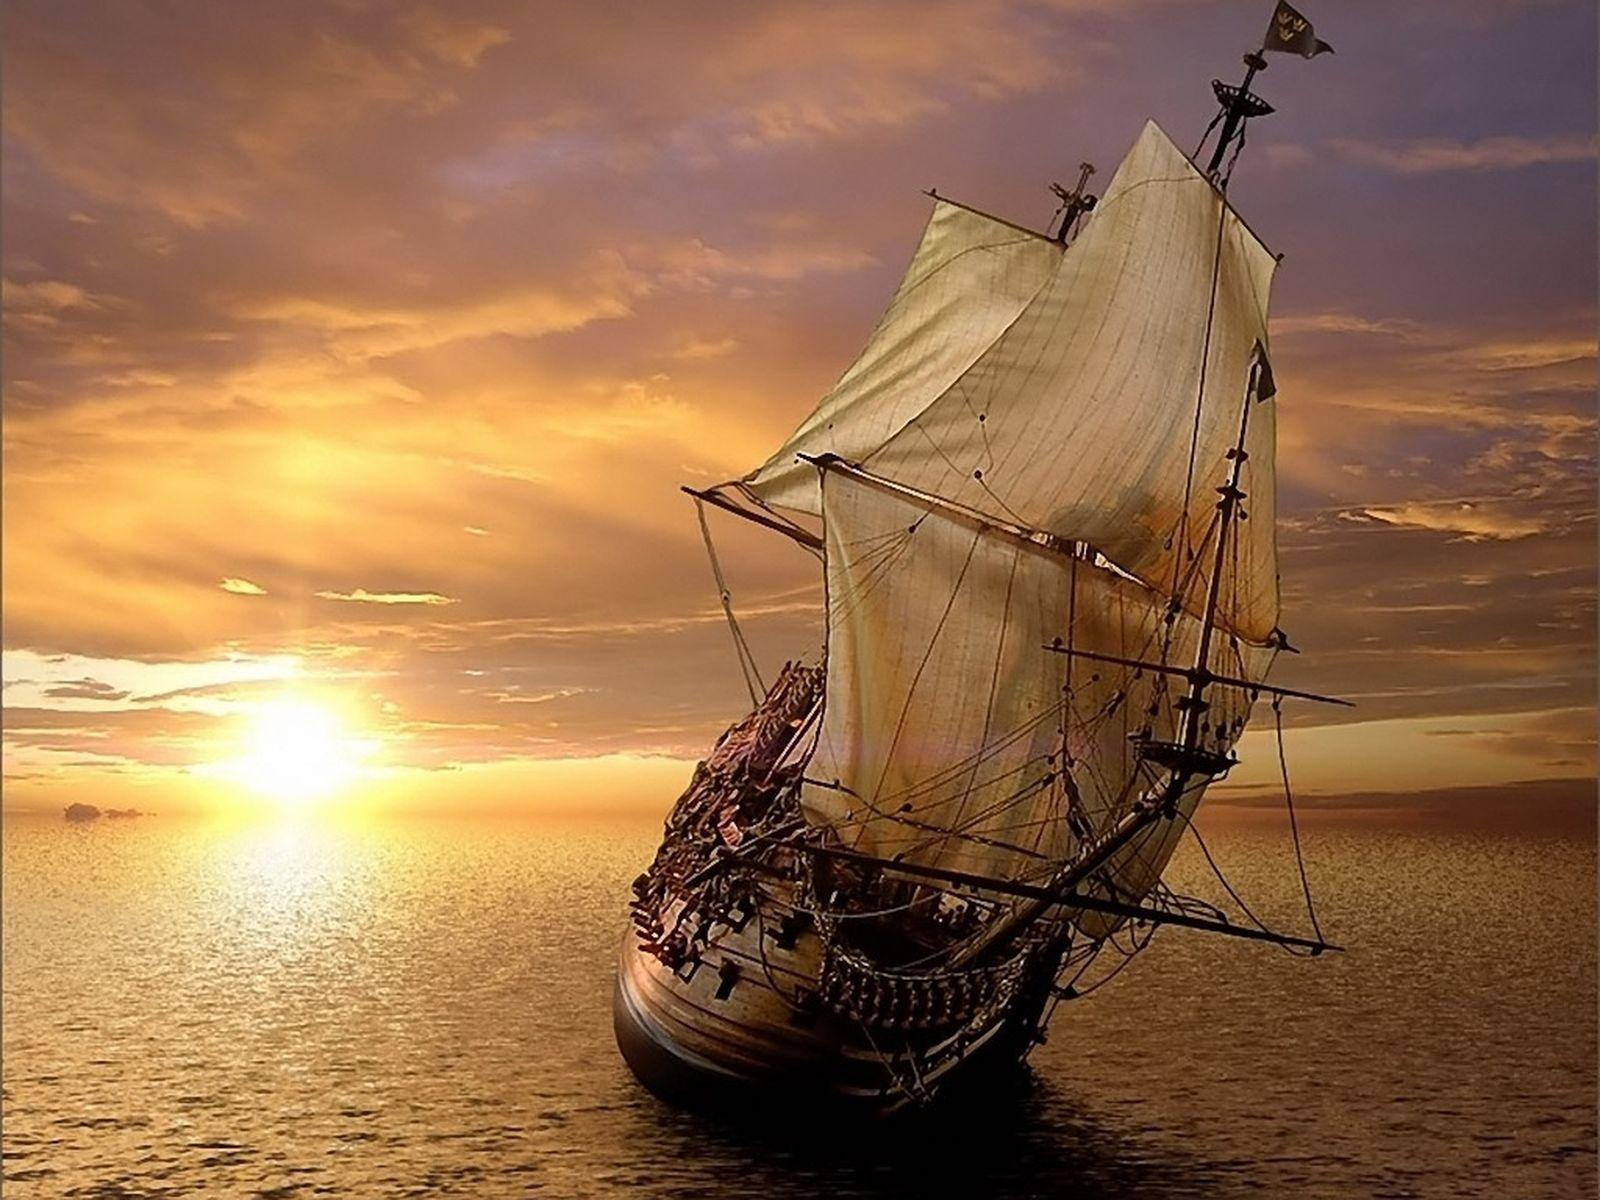 Widescreen resolutions (16:10): 1280x800 1440x900 1680x1050 1920x1200. Normal resolutions: 1024x768 1280x1024. Wallpaper Tags: sailboat sea boats sunset